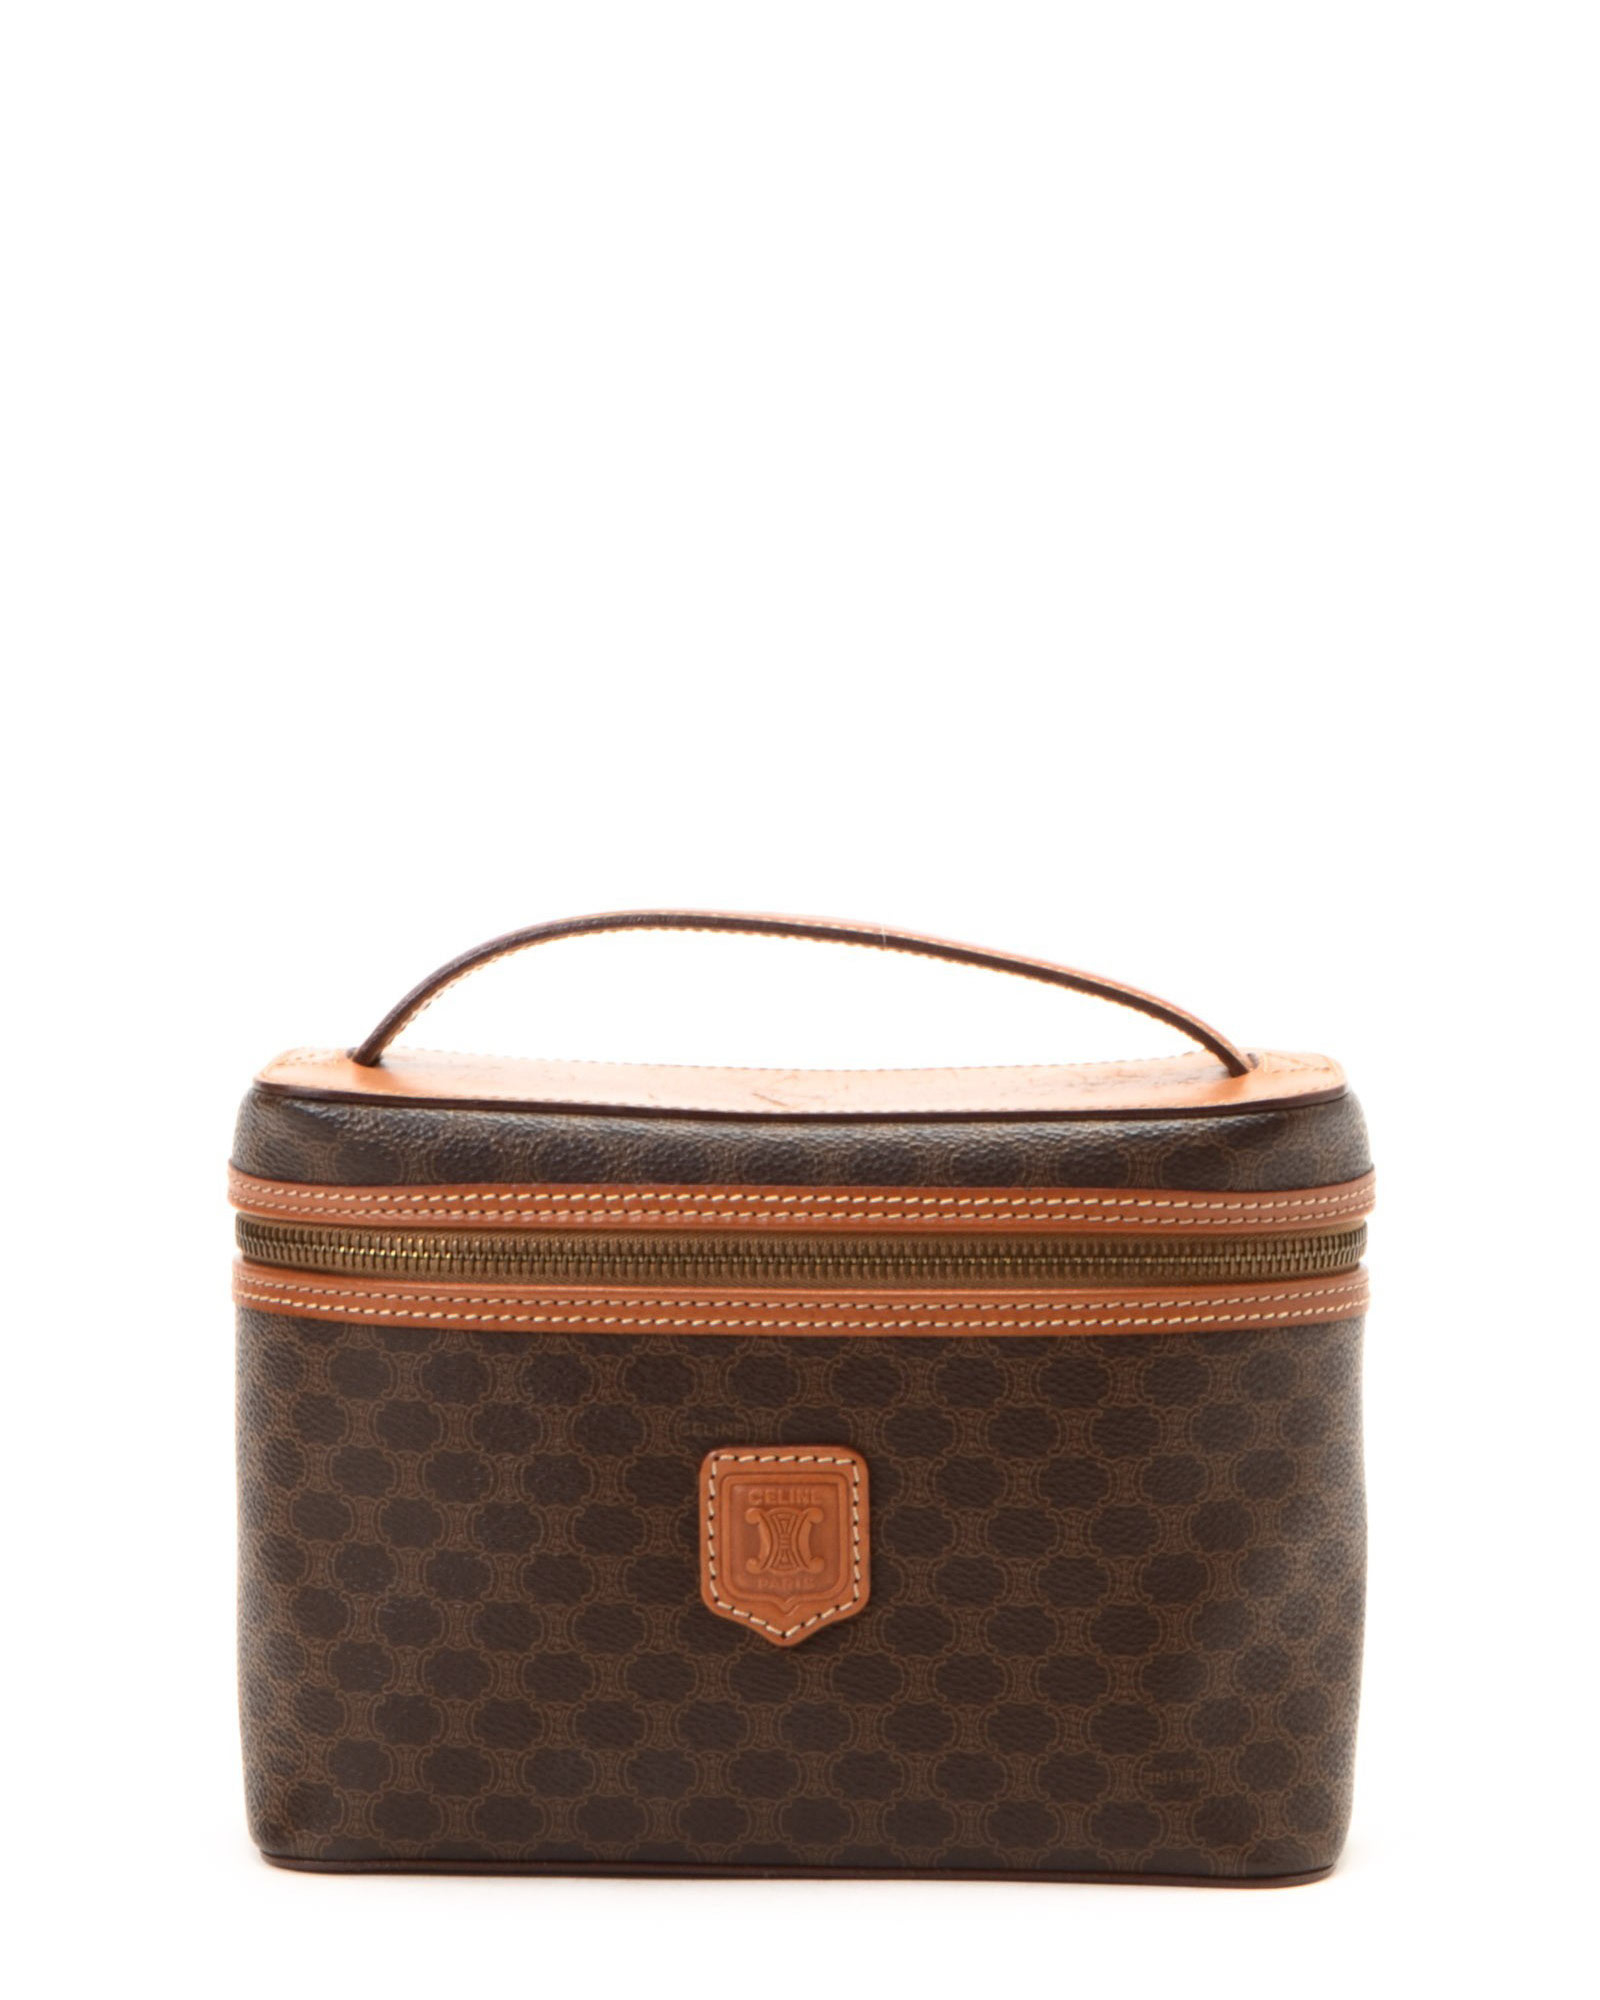 celine belt vanity case